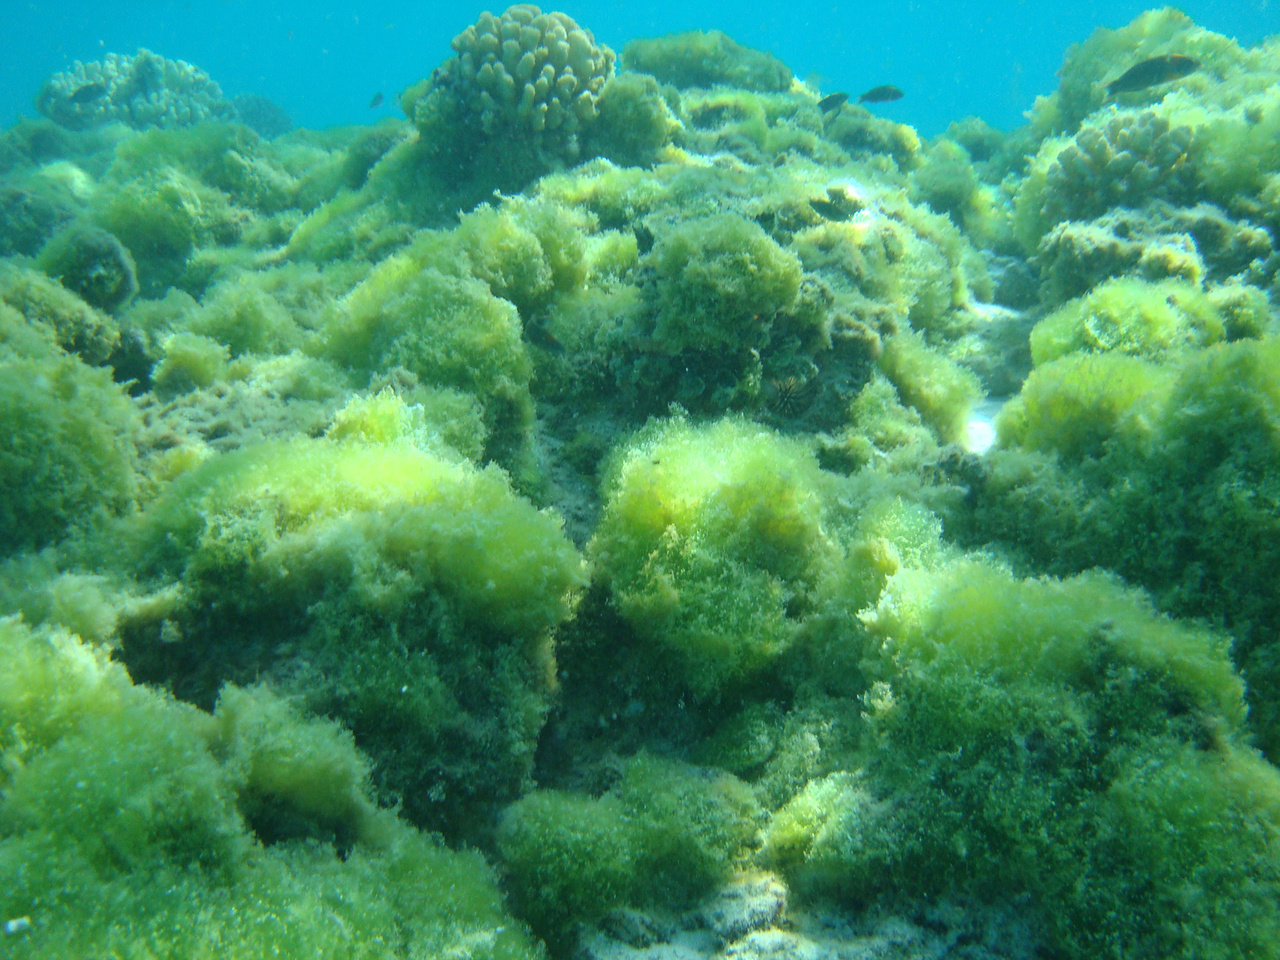 Alga Boodlea dominated many areas of the Kure Atoll lagoon